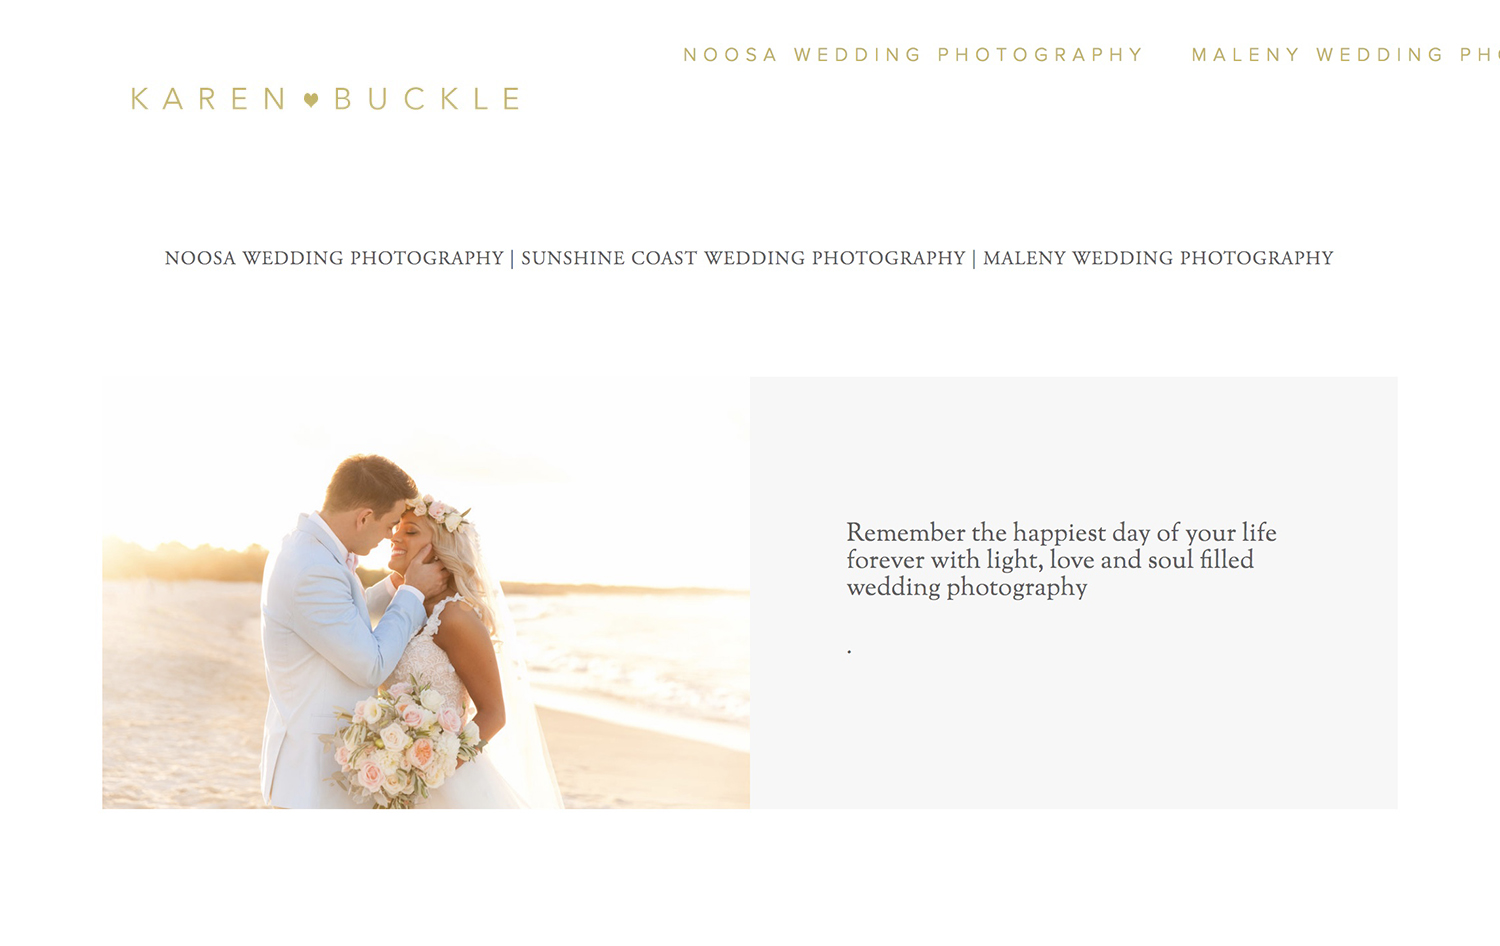 Karen Buckle Photography - PH: 0407 246 300 karenbucklephotography@gmail.com